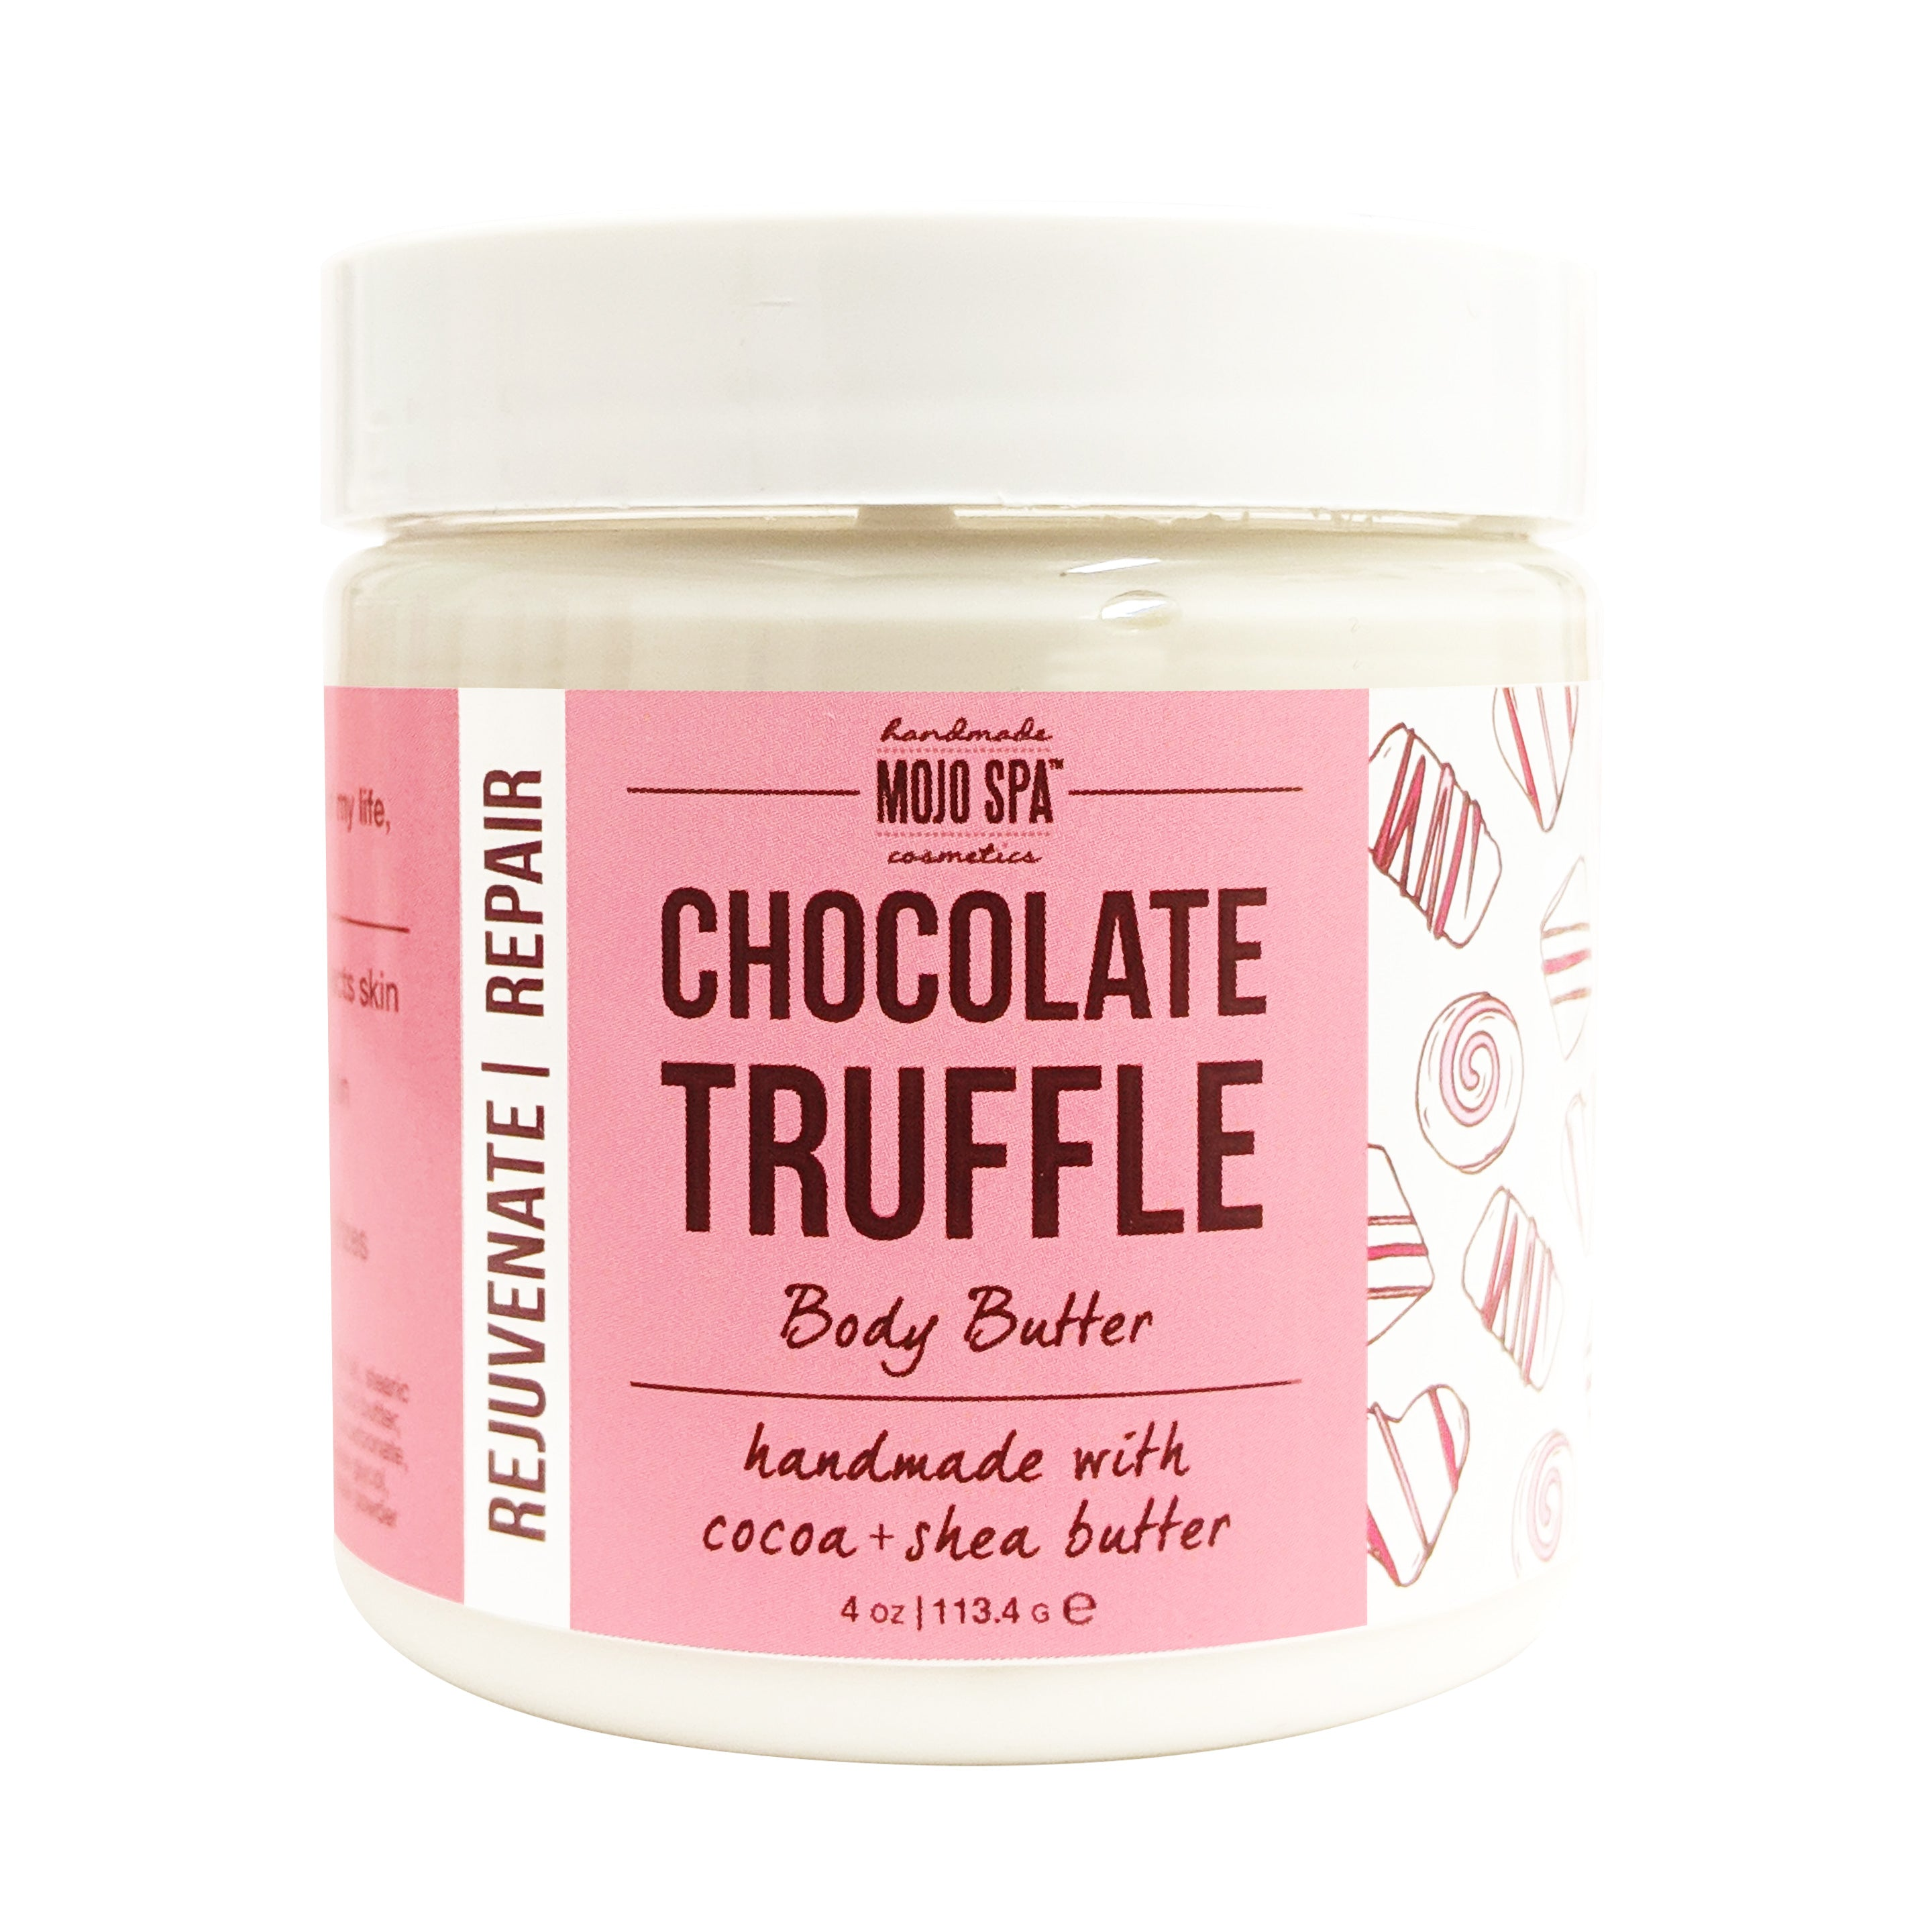 Chocolate Truffle Body Butter